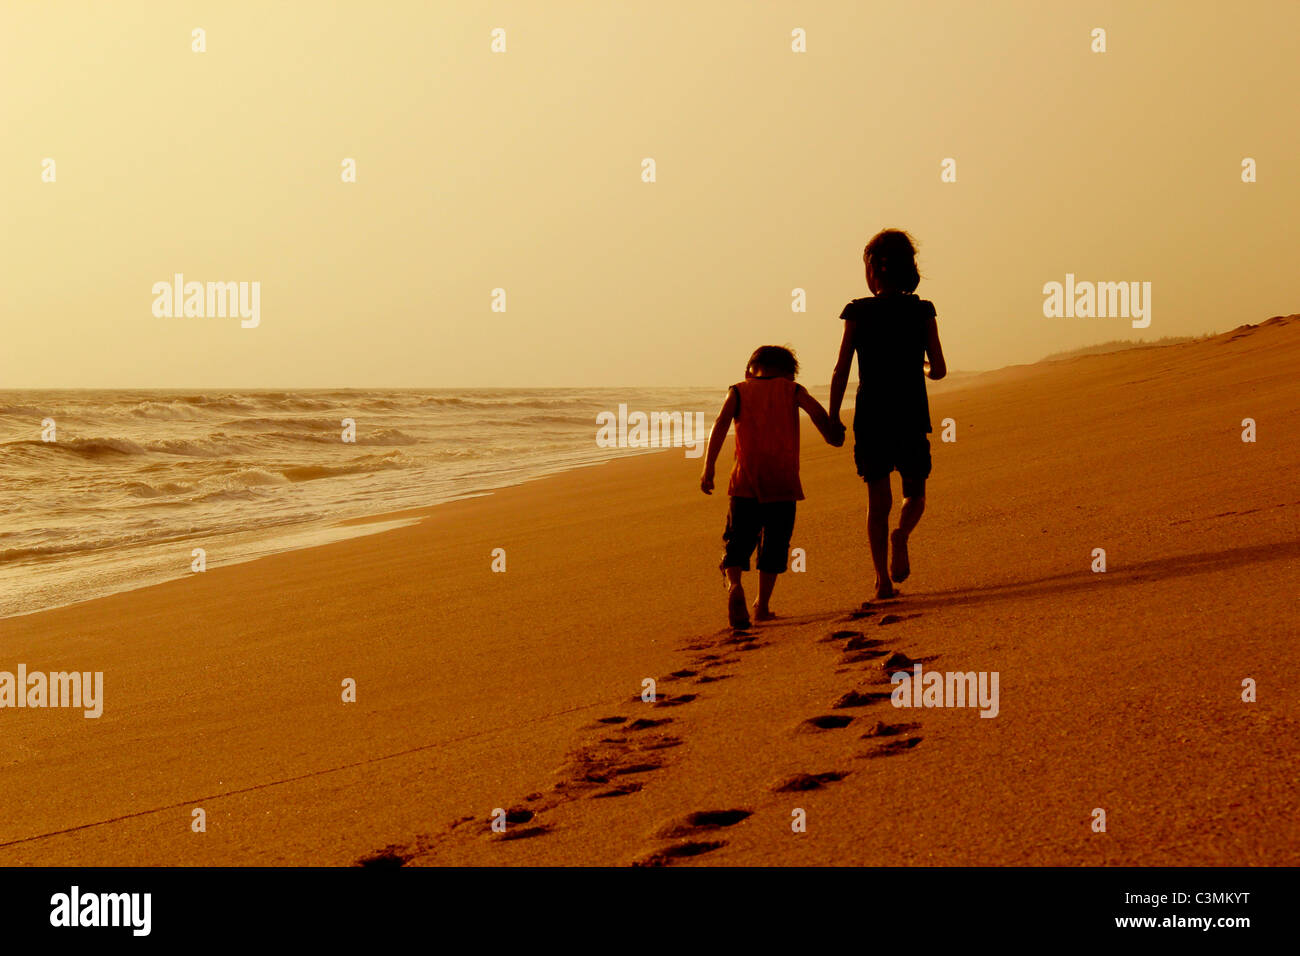 Girl and boy walking on a beach with foot prints left behind - Stock Image